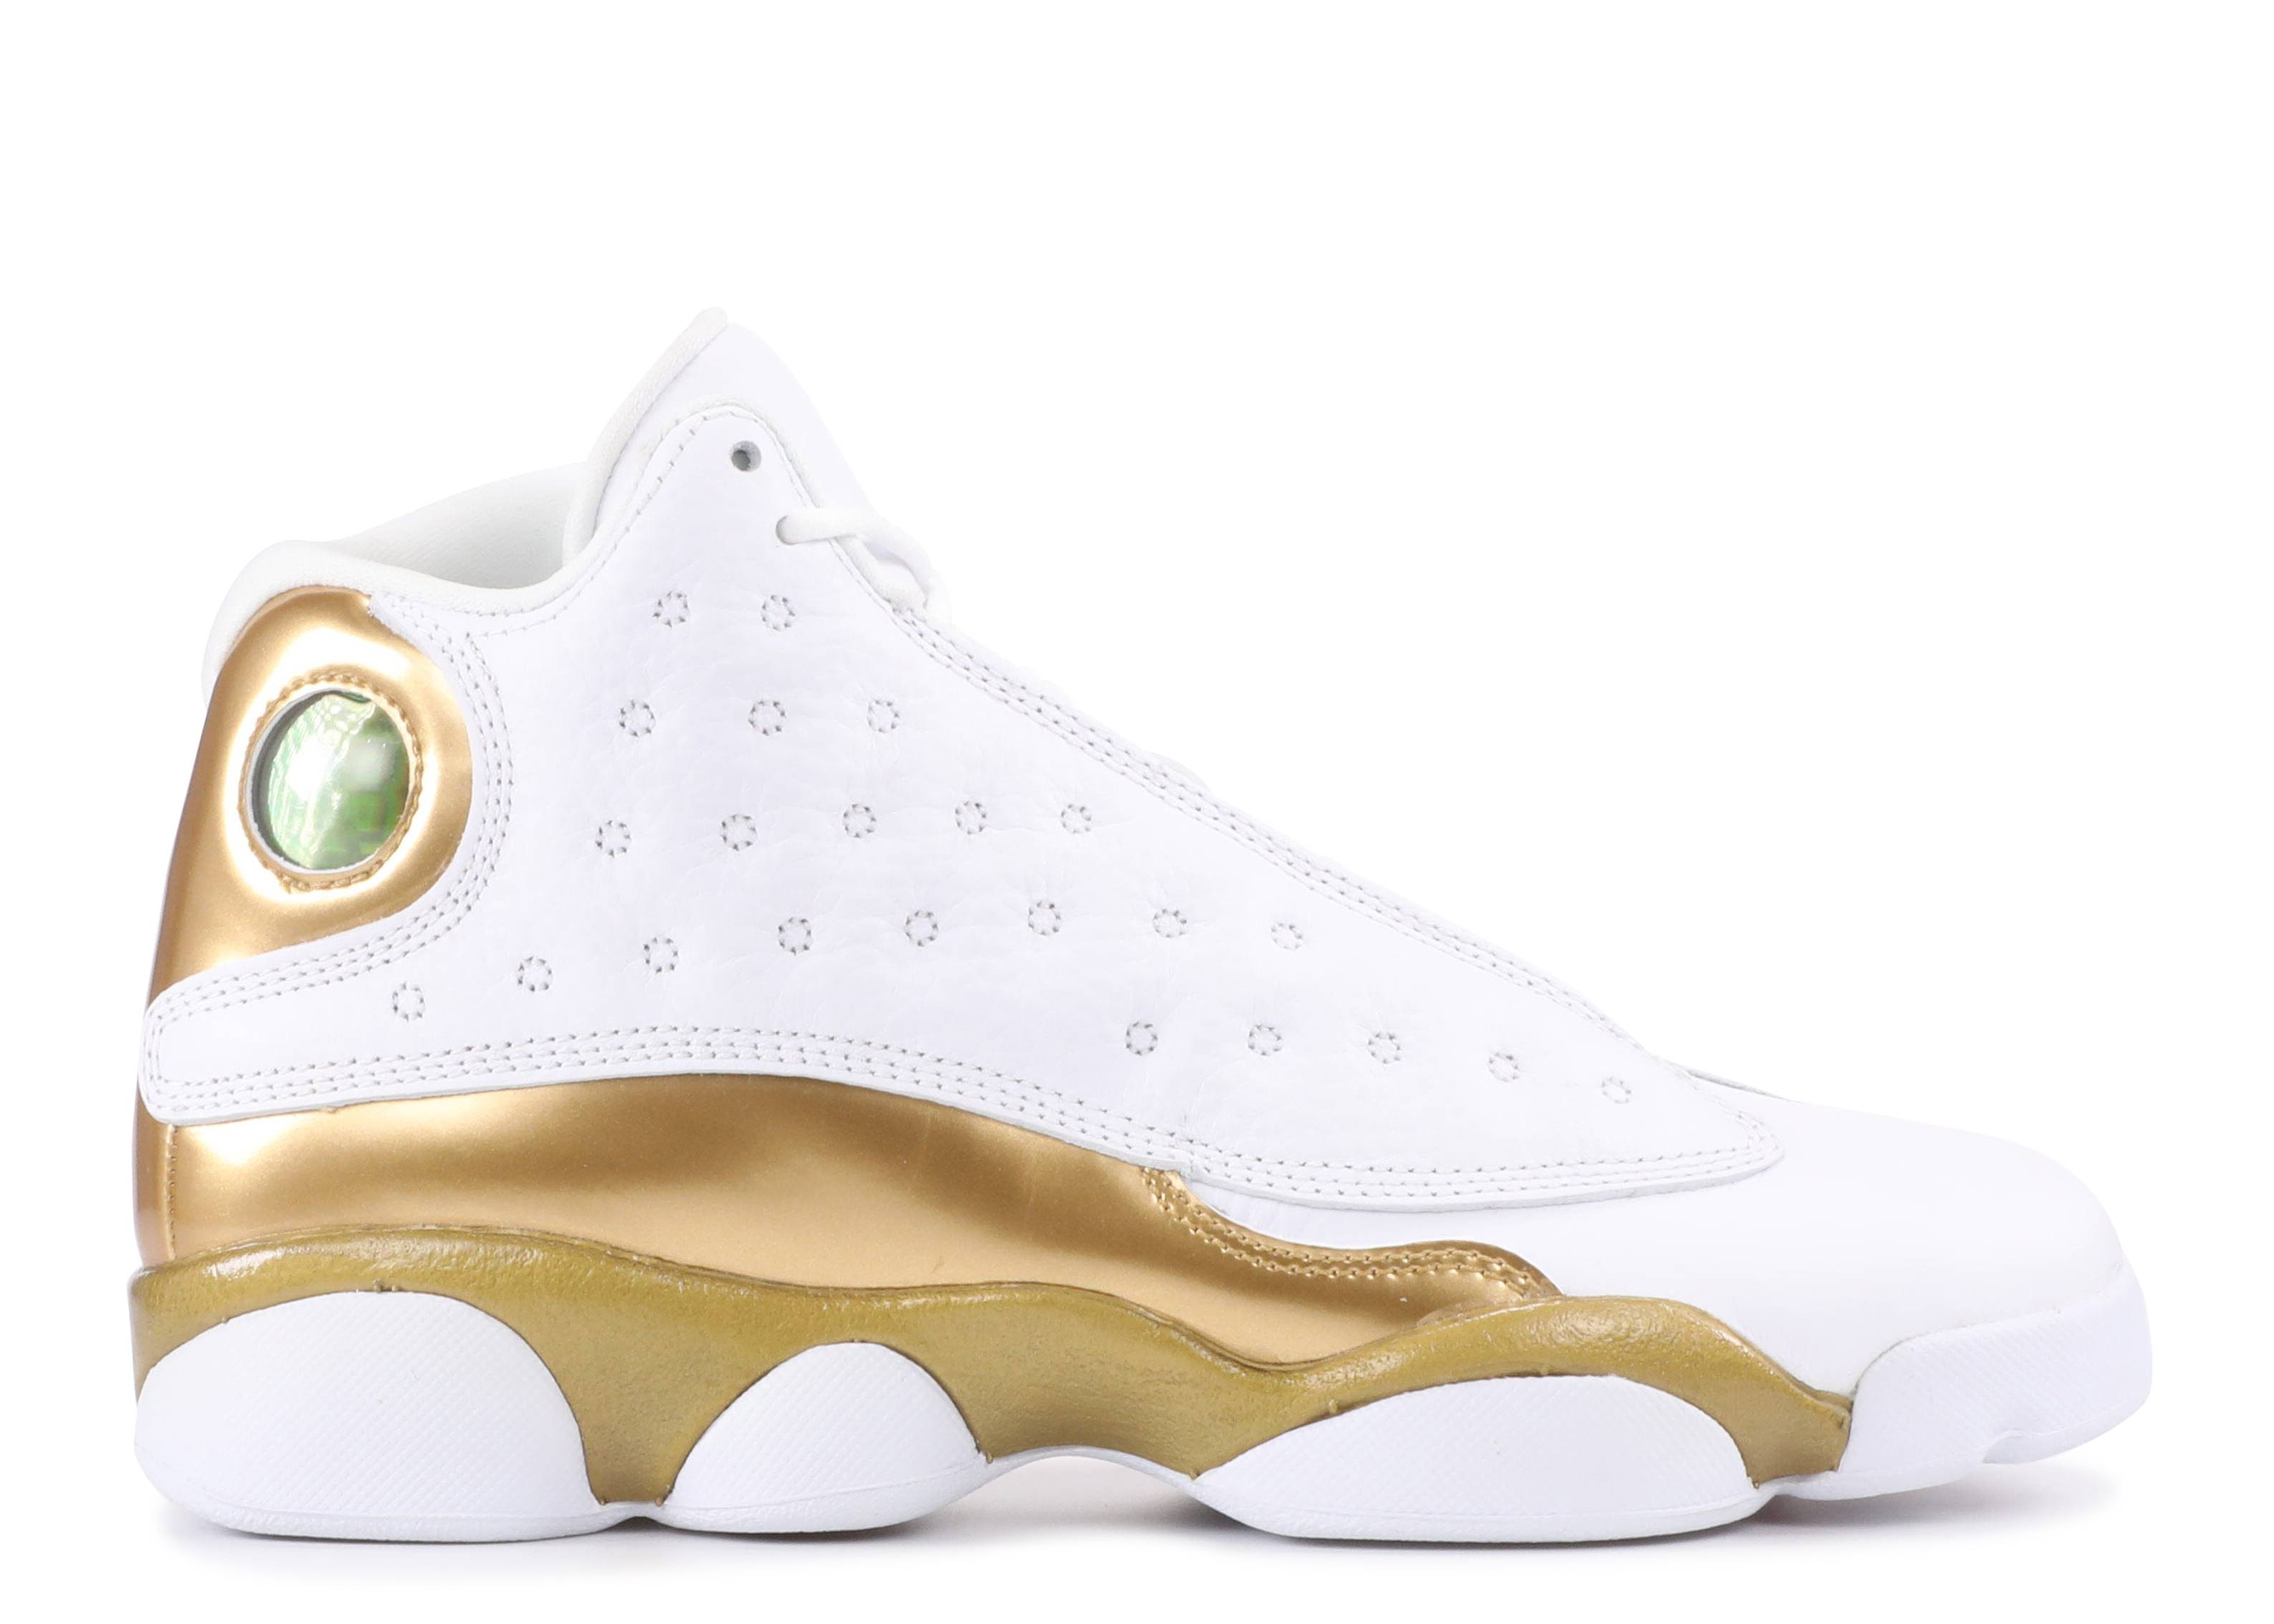 "Air Jordan 13/14 Retro BG DMP 'Defining Moments Pack' ""Defining Moments Pack"""